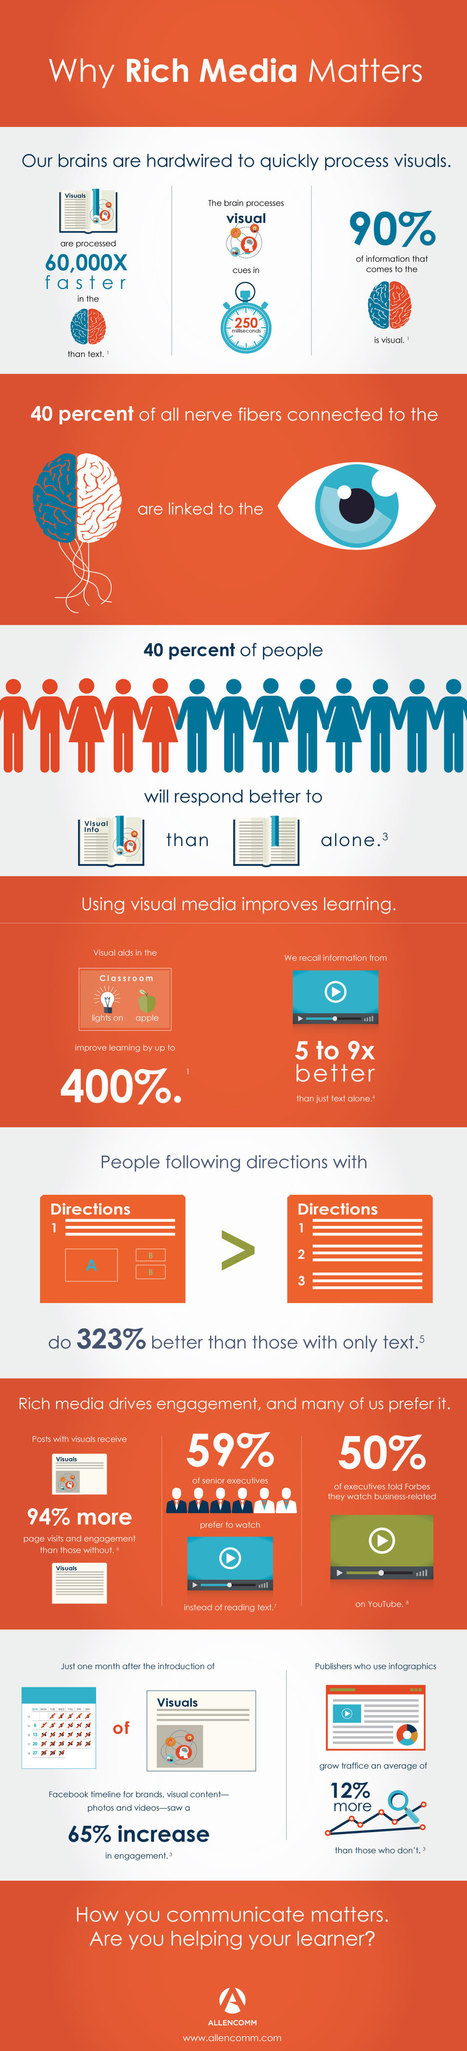 Boosting Learner Engagement with Rich Media Infographic | Infographic | School Psychology Tech | Scoop.it